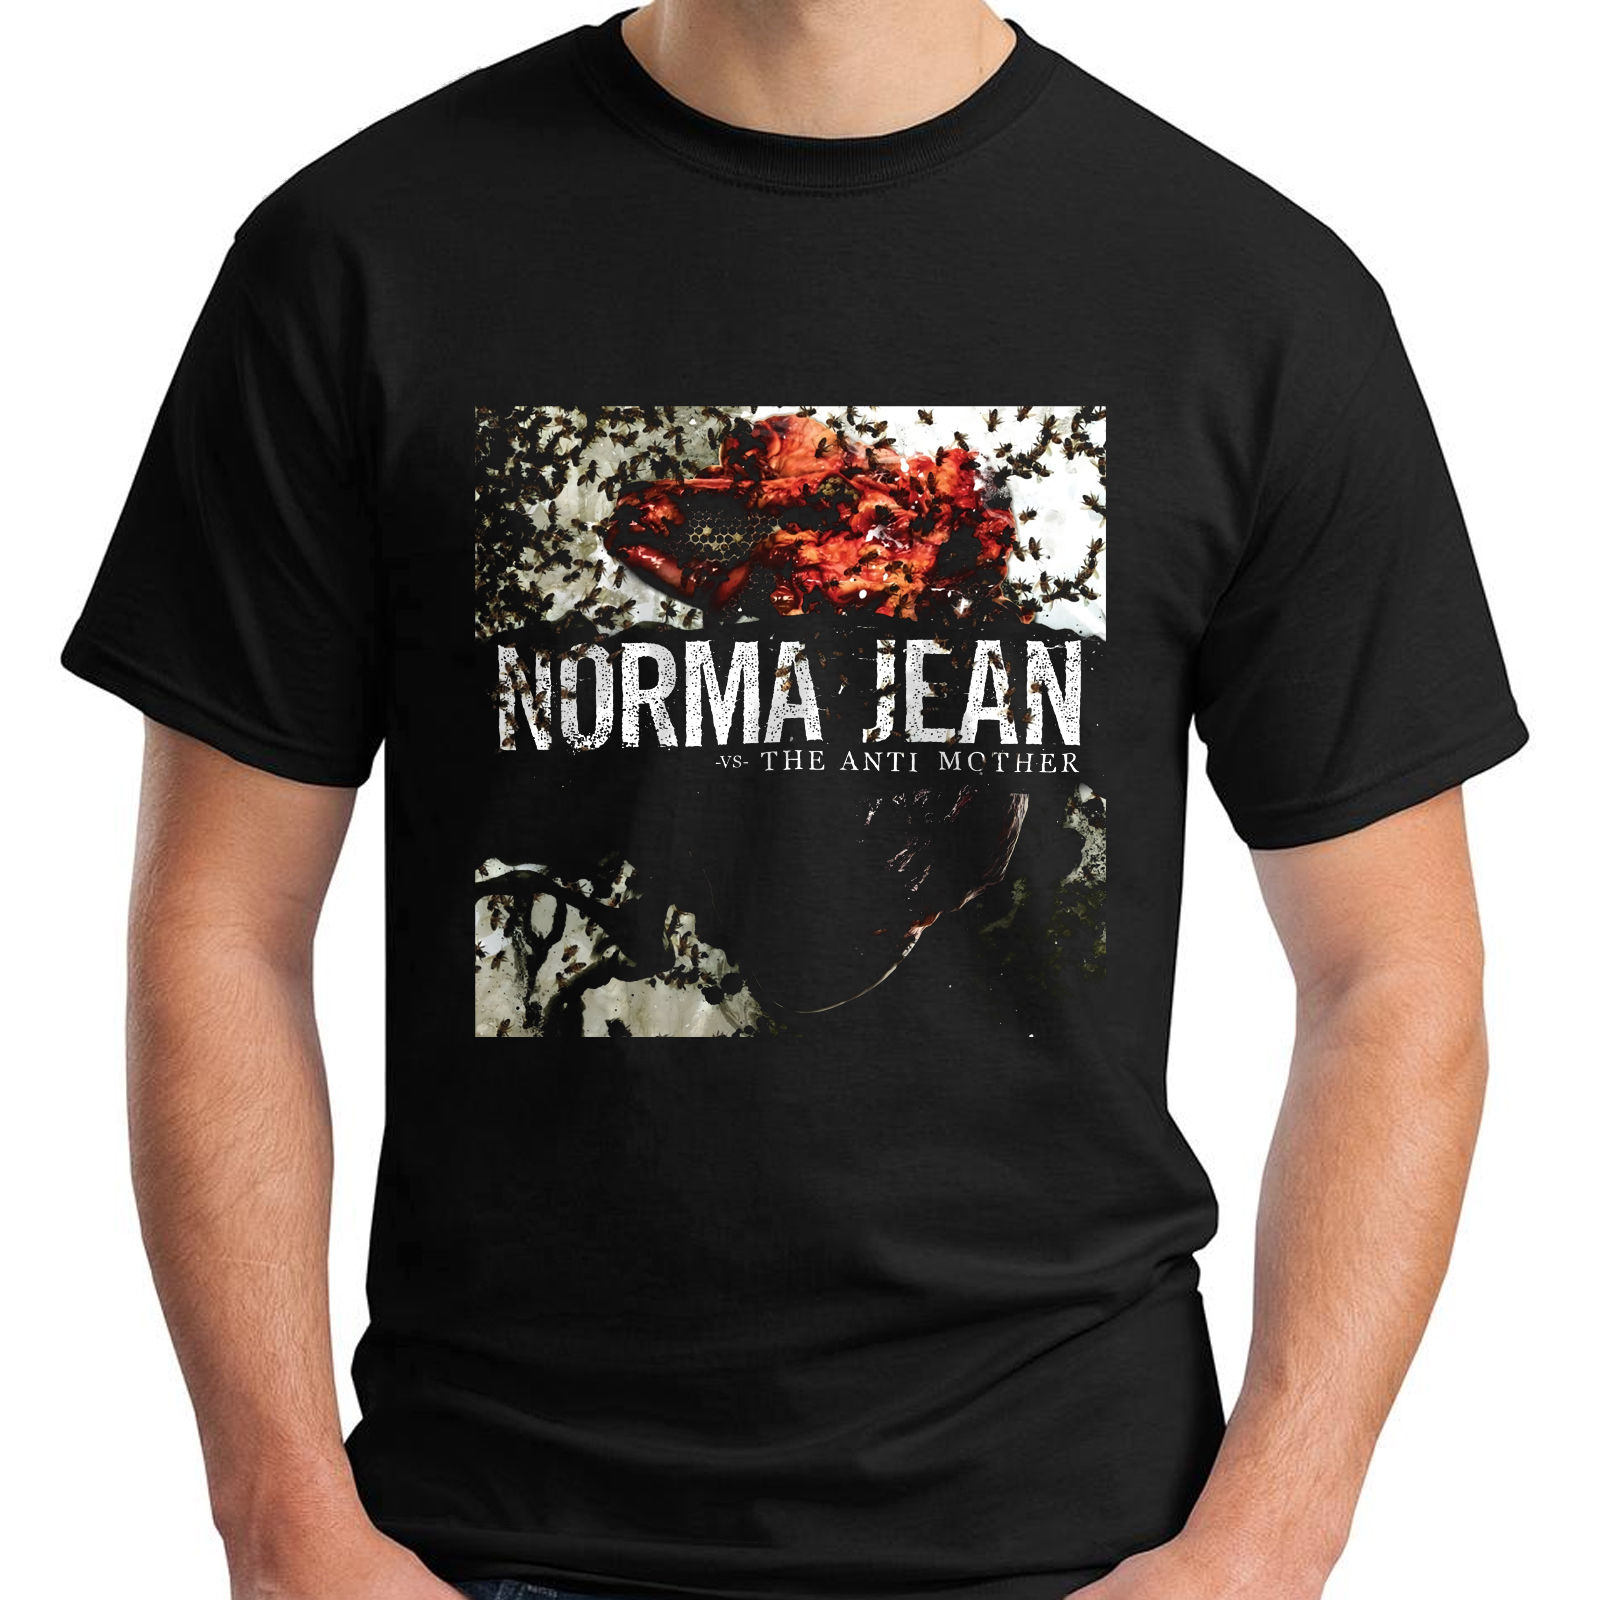 NORMA JEAN The Anti Mother Metalcore Band Sleeve Black Men's T-Shirt Size S-5XL Cool Casual pride t shirt men Unisex New image